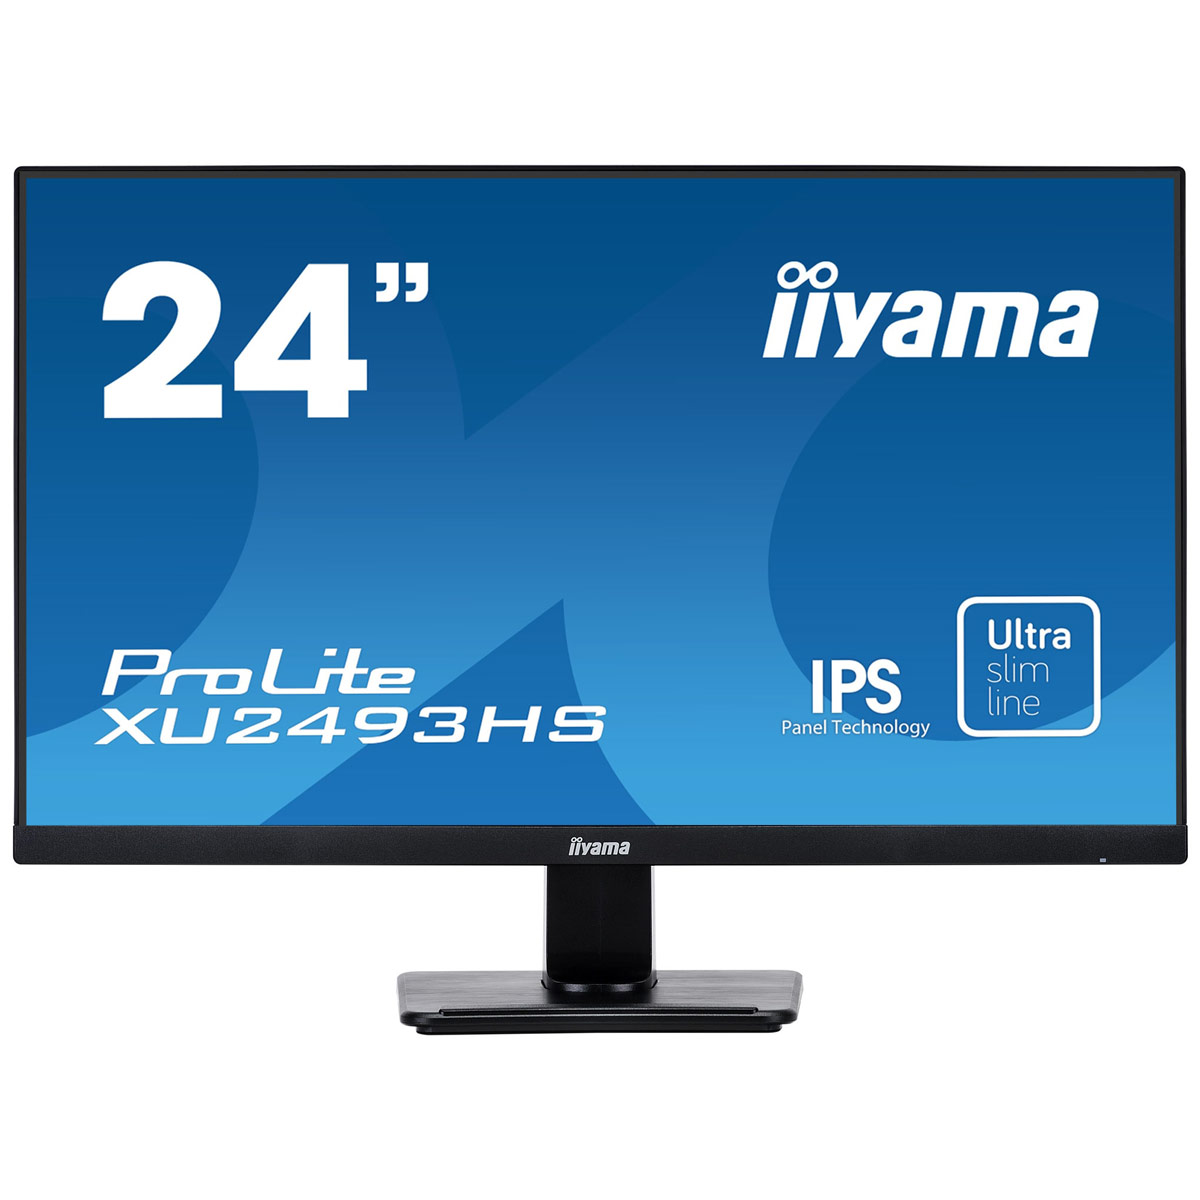 "Ecran PC iiyama 23.8"" LED - ProLite XU2493HS-B1 1920 x 1080 pixels - 4 ms - Format large 16/9 - Dalle IPS - HDMI - DisplayPort - Noir"